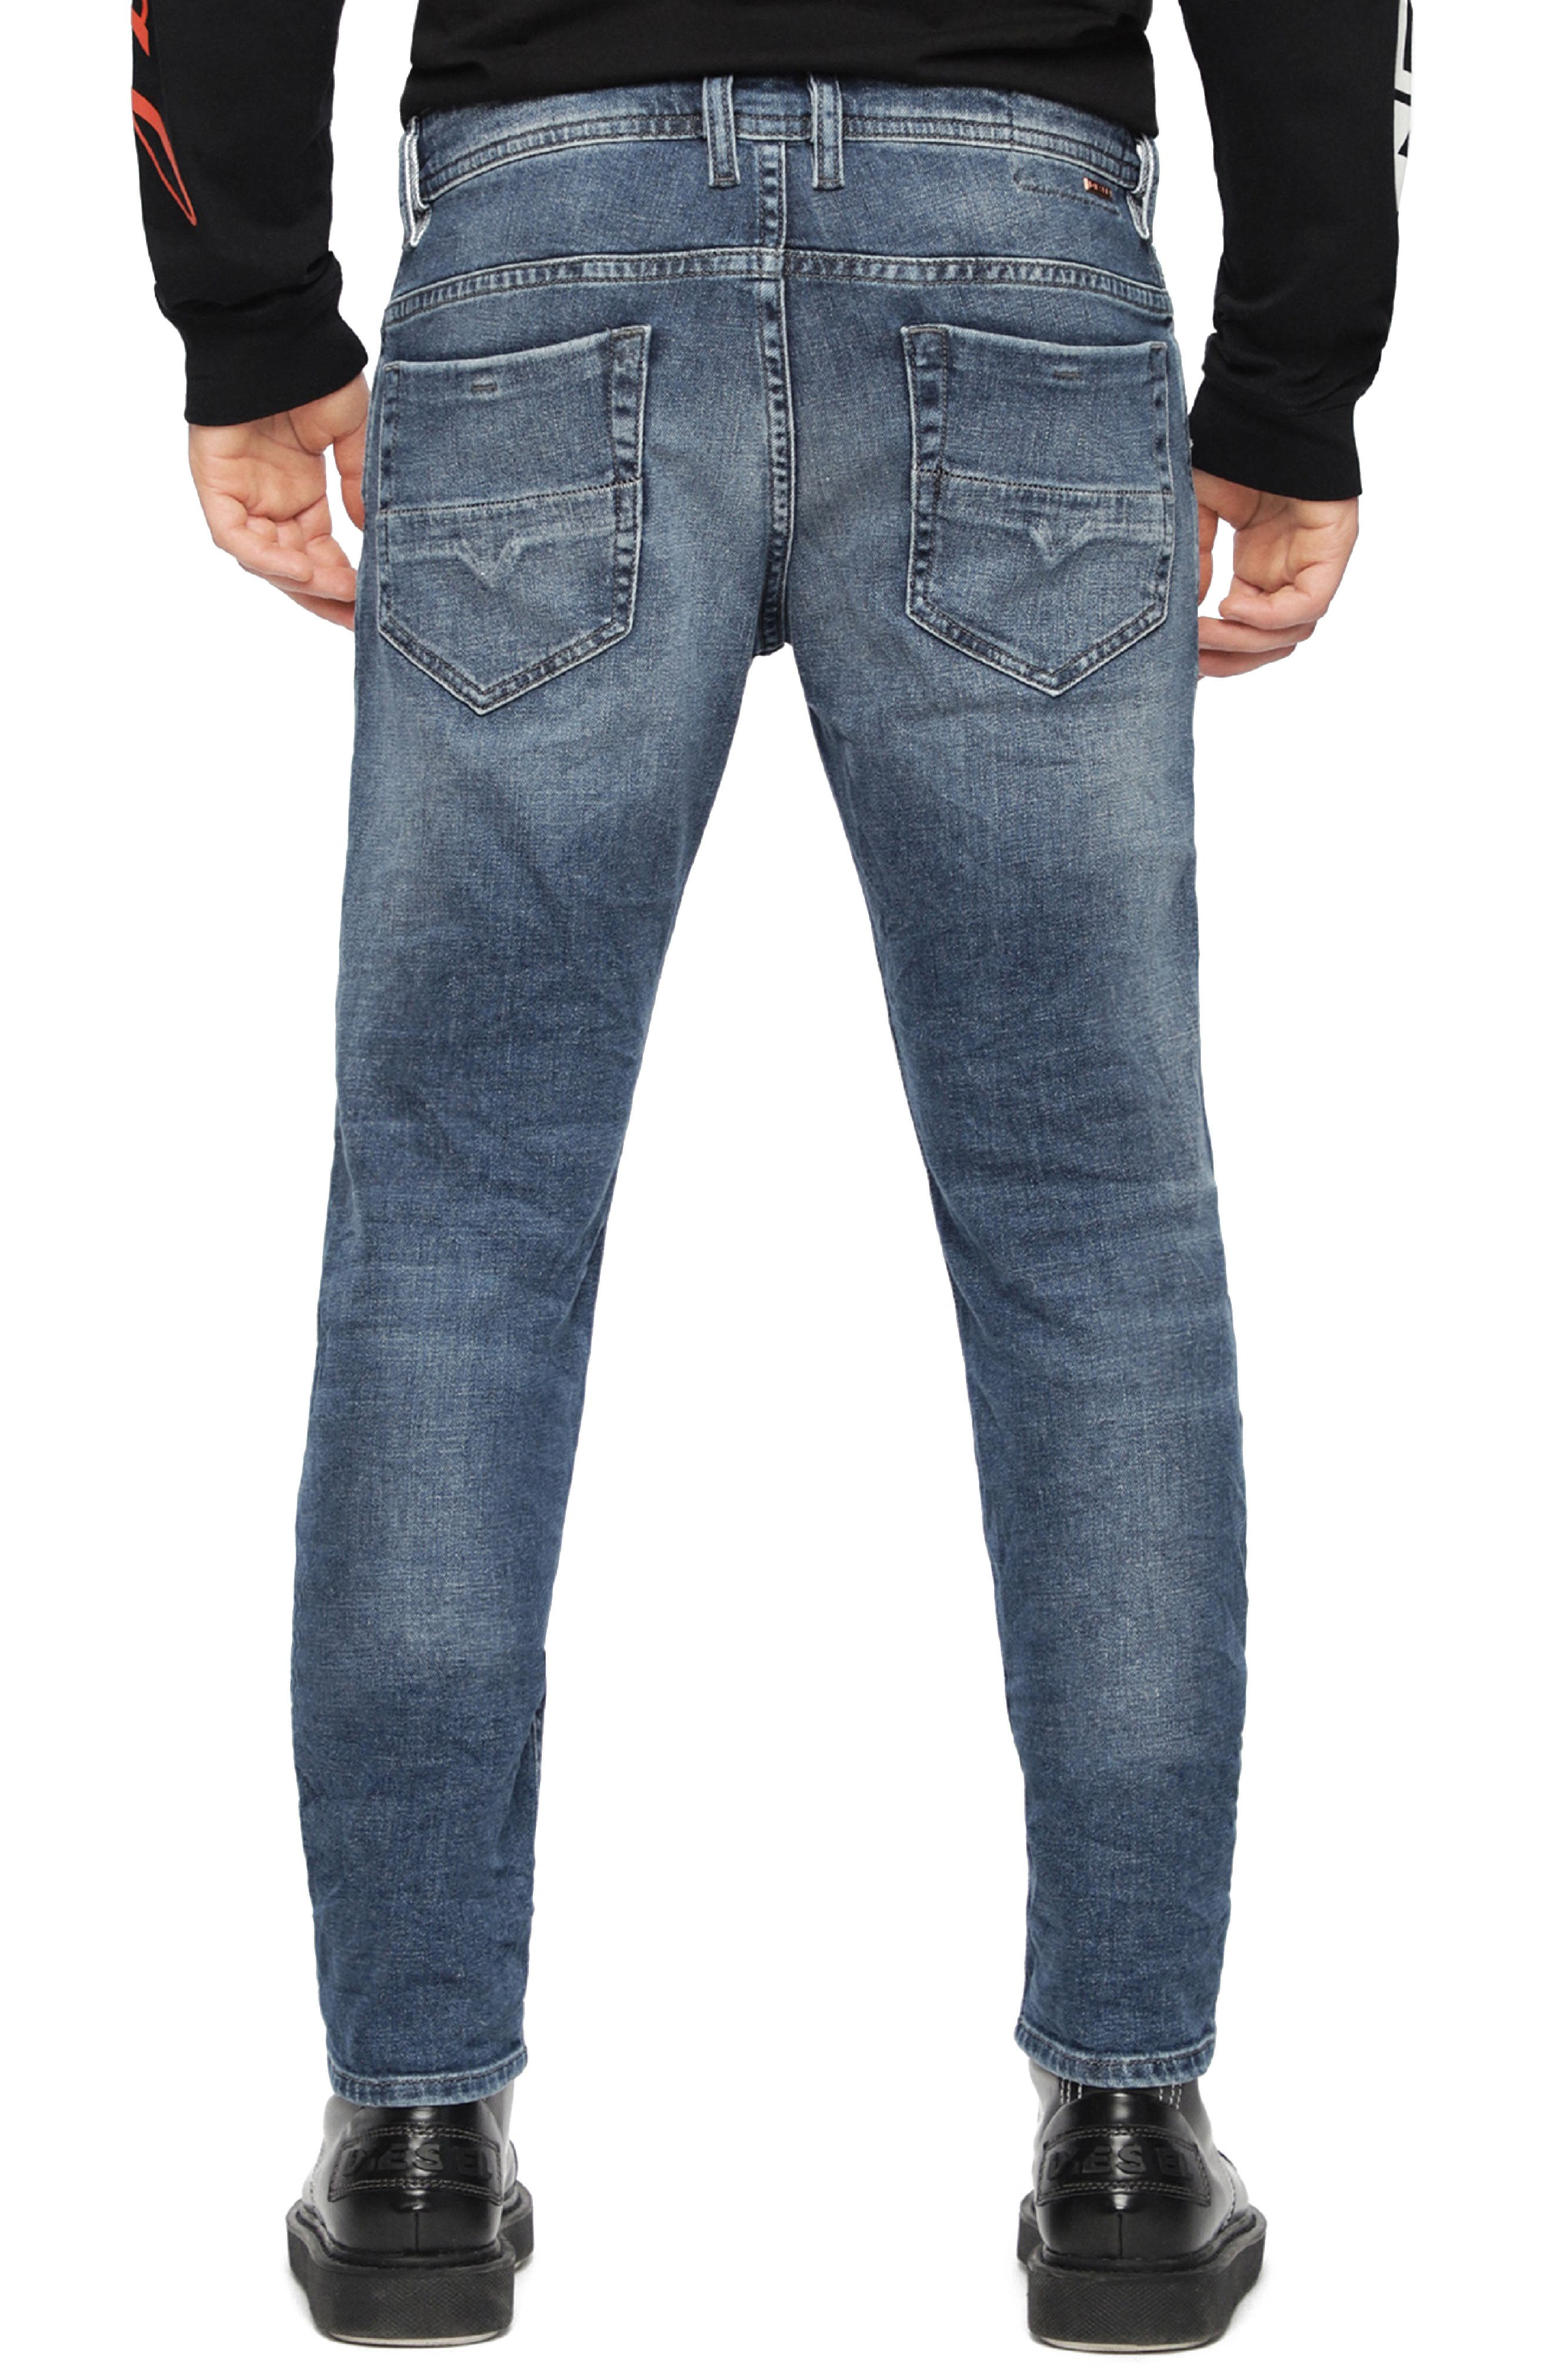 Thommer Slim Fit Jeans,                             Alternate thumbnail 2, color,                             084UH